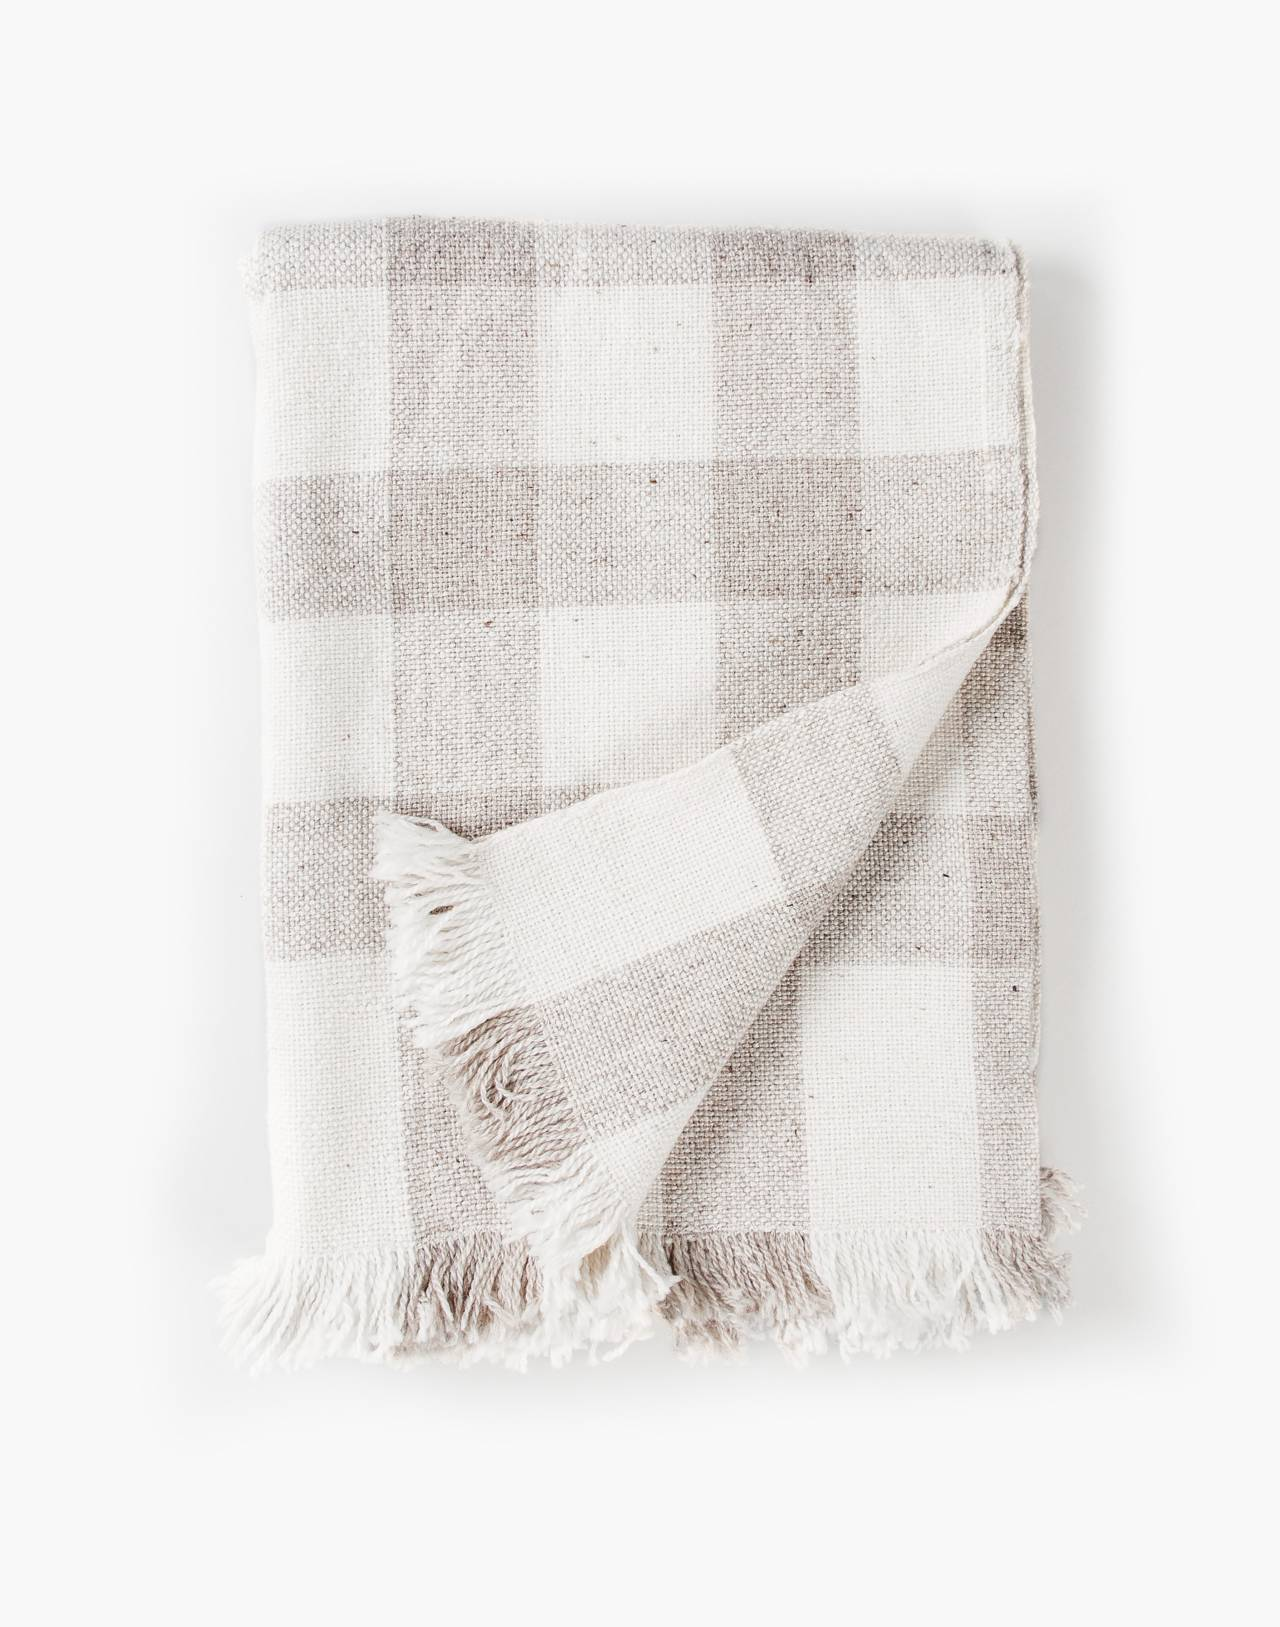 SOMEWARE™ Monterey Throw in grey image 1